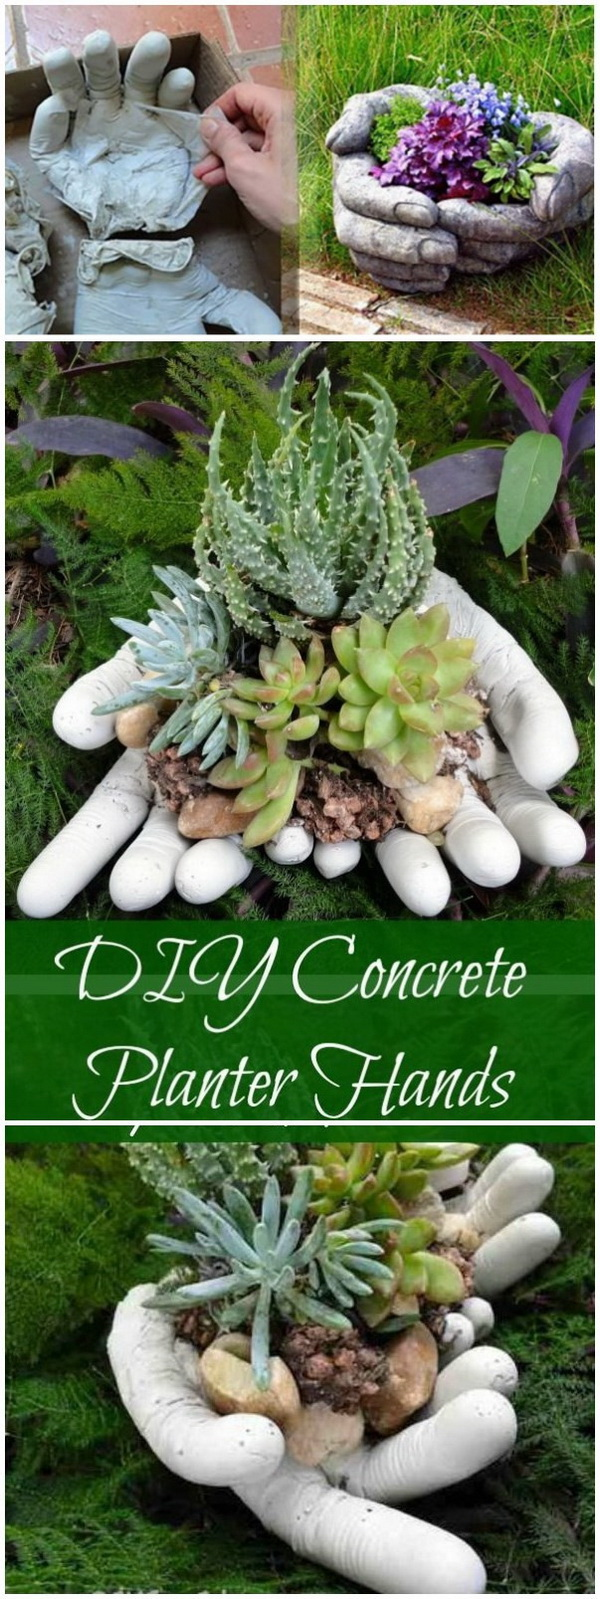 DIY Concrete Hand Planters. Make a collection of these unique hand planters with concrete to decorate your outdoor space!